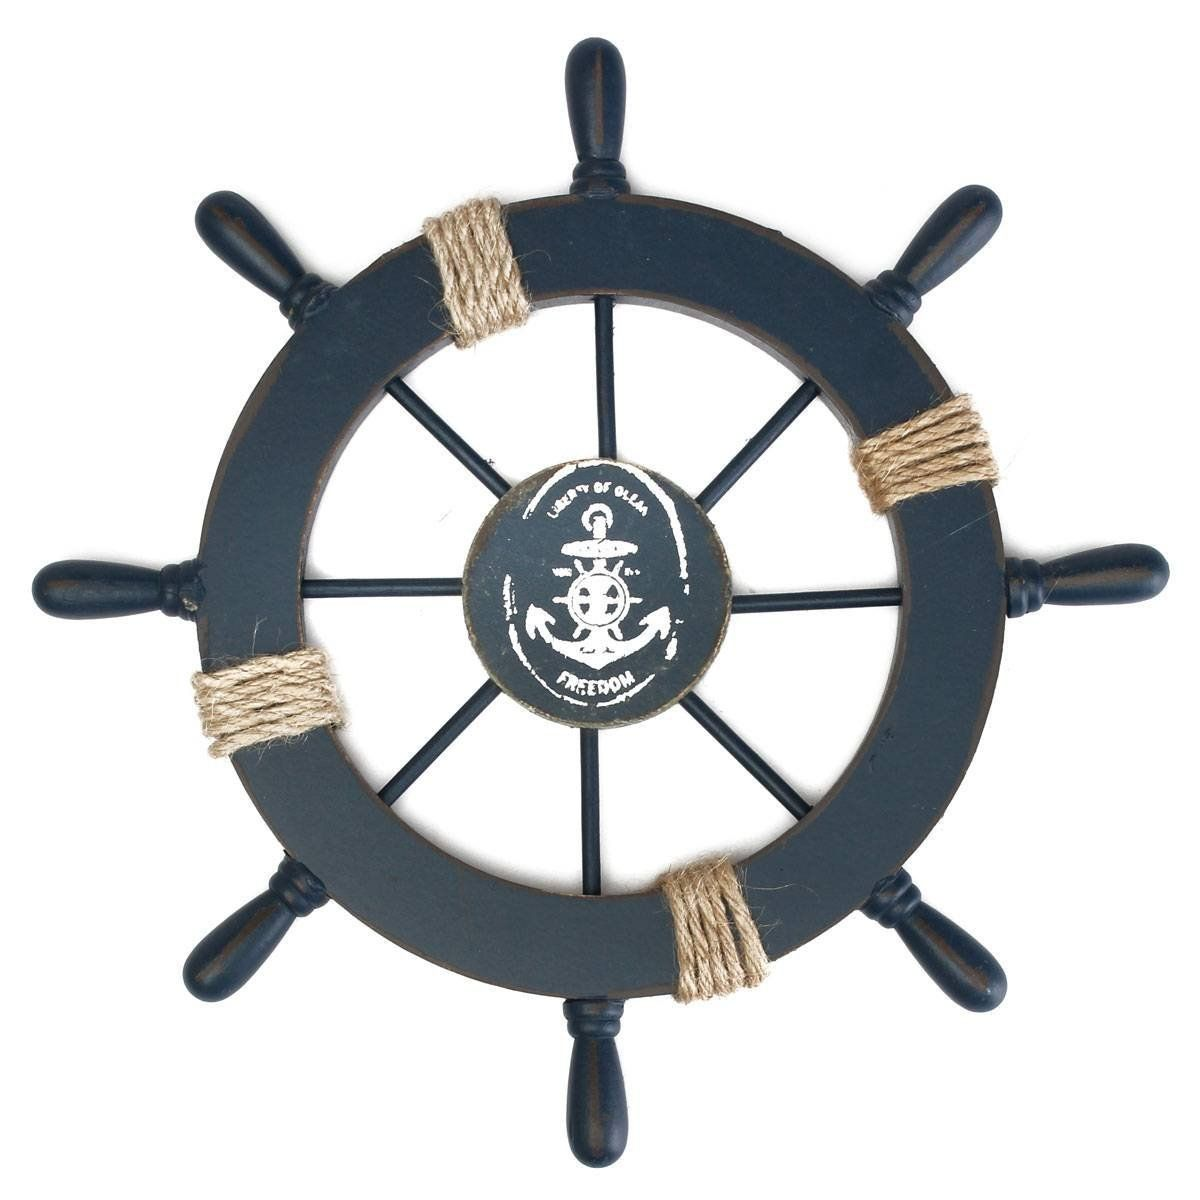 Mediterranean Nautical Wooden Boat Ship Wheel Helm Home Wall Party Decoration Dark Blue Ship Wheel Wooden Ship Wooden Wheel